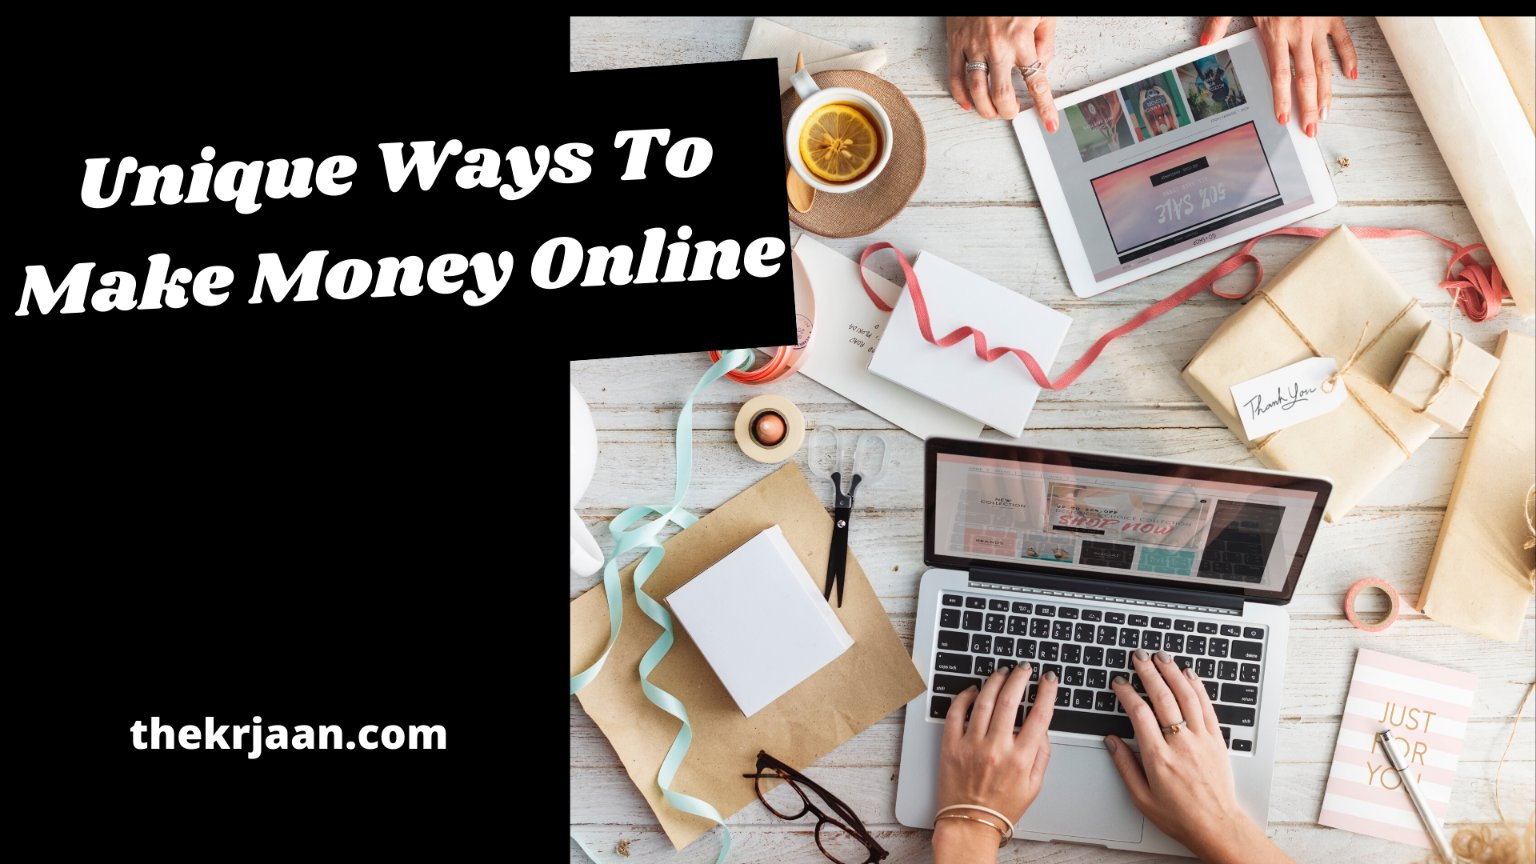 Unique Ways To Make Money Online From Home